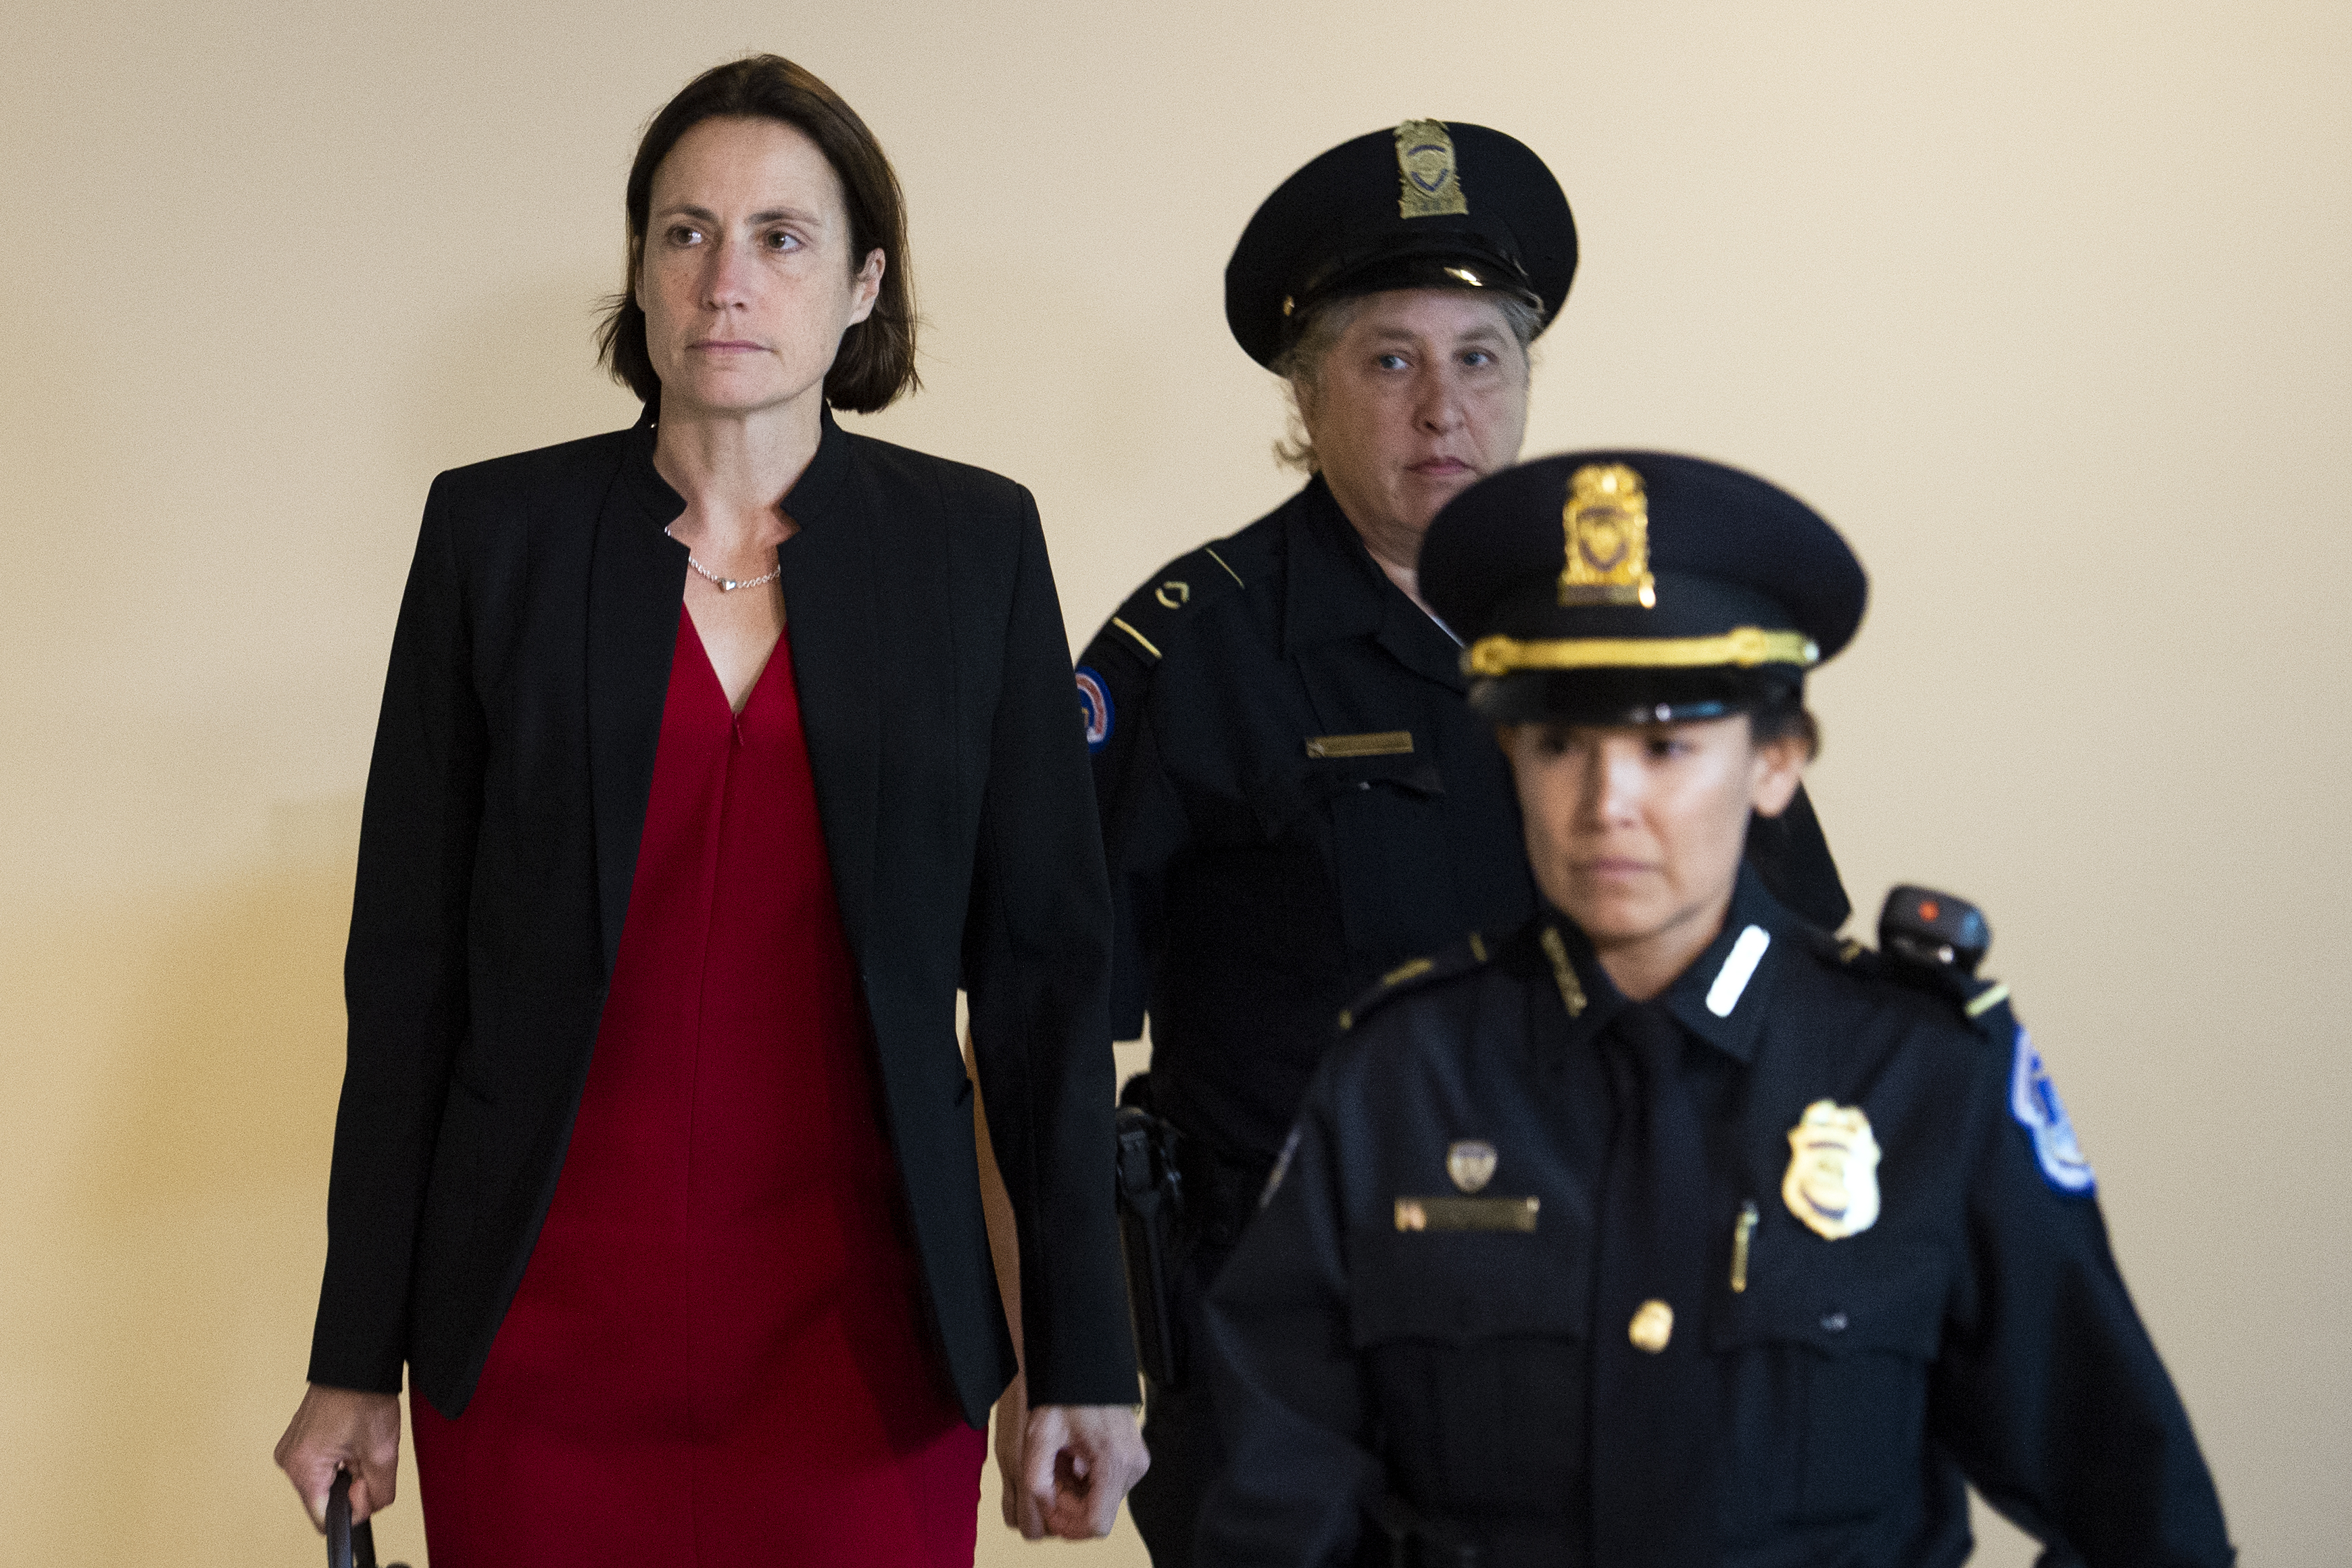 Hill walks down Capitol Hill's hallways alongside police officers.